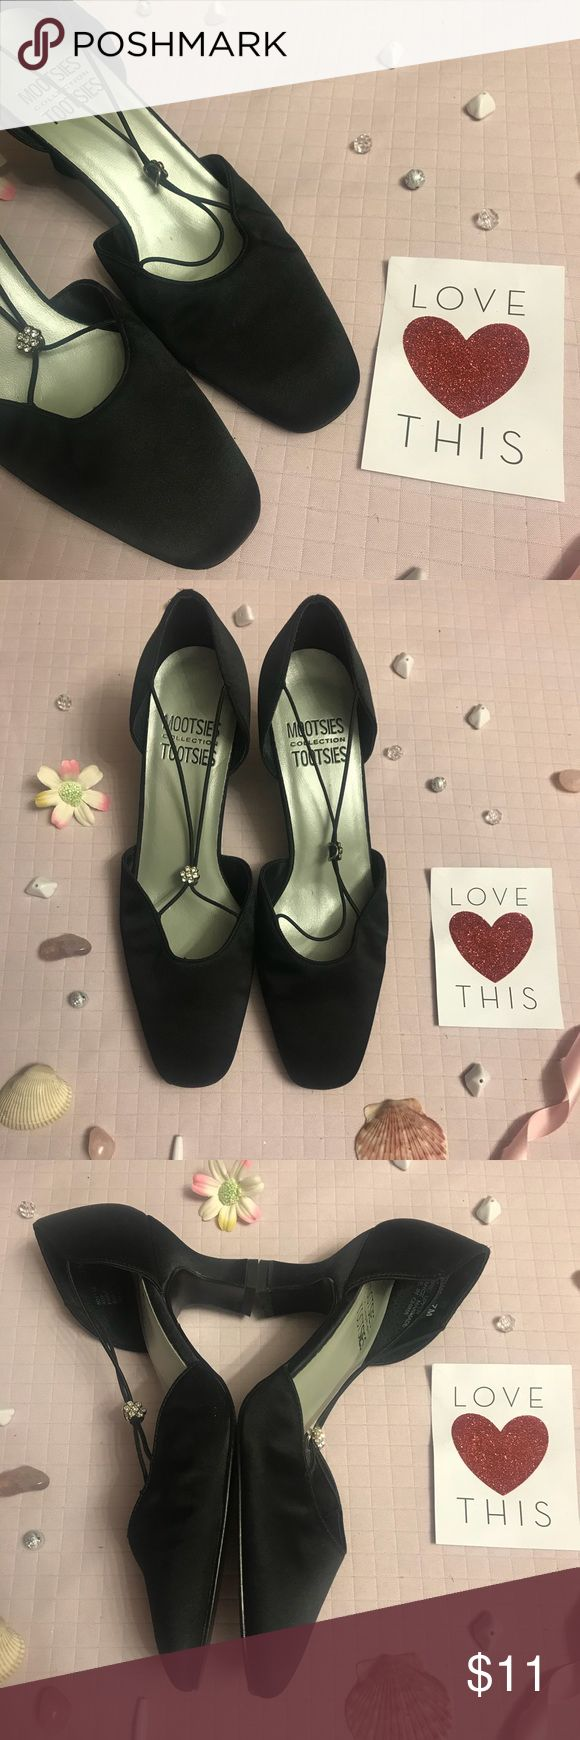 Mootsies Tootsies Size 7 Black Satin Heels Mootsies Tootsies Size 7 Black satin heels  in great condition only worn once.  Great  for a night on the town these 2 1/2 inch heels have a black elastic strap with small flowers rhinestones that adjust to fit.  Prices are always negotiable and bundling is always appreciated and discounted   #mootsiestootsies #black #blacksatin Mootsies Tootsies Shoes Heels